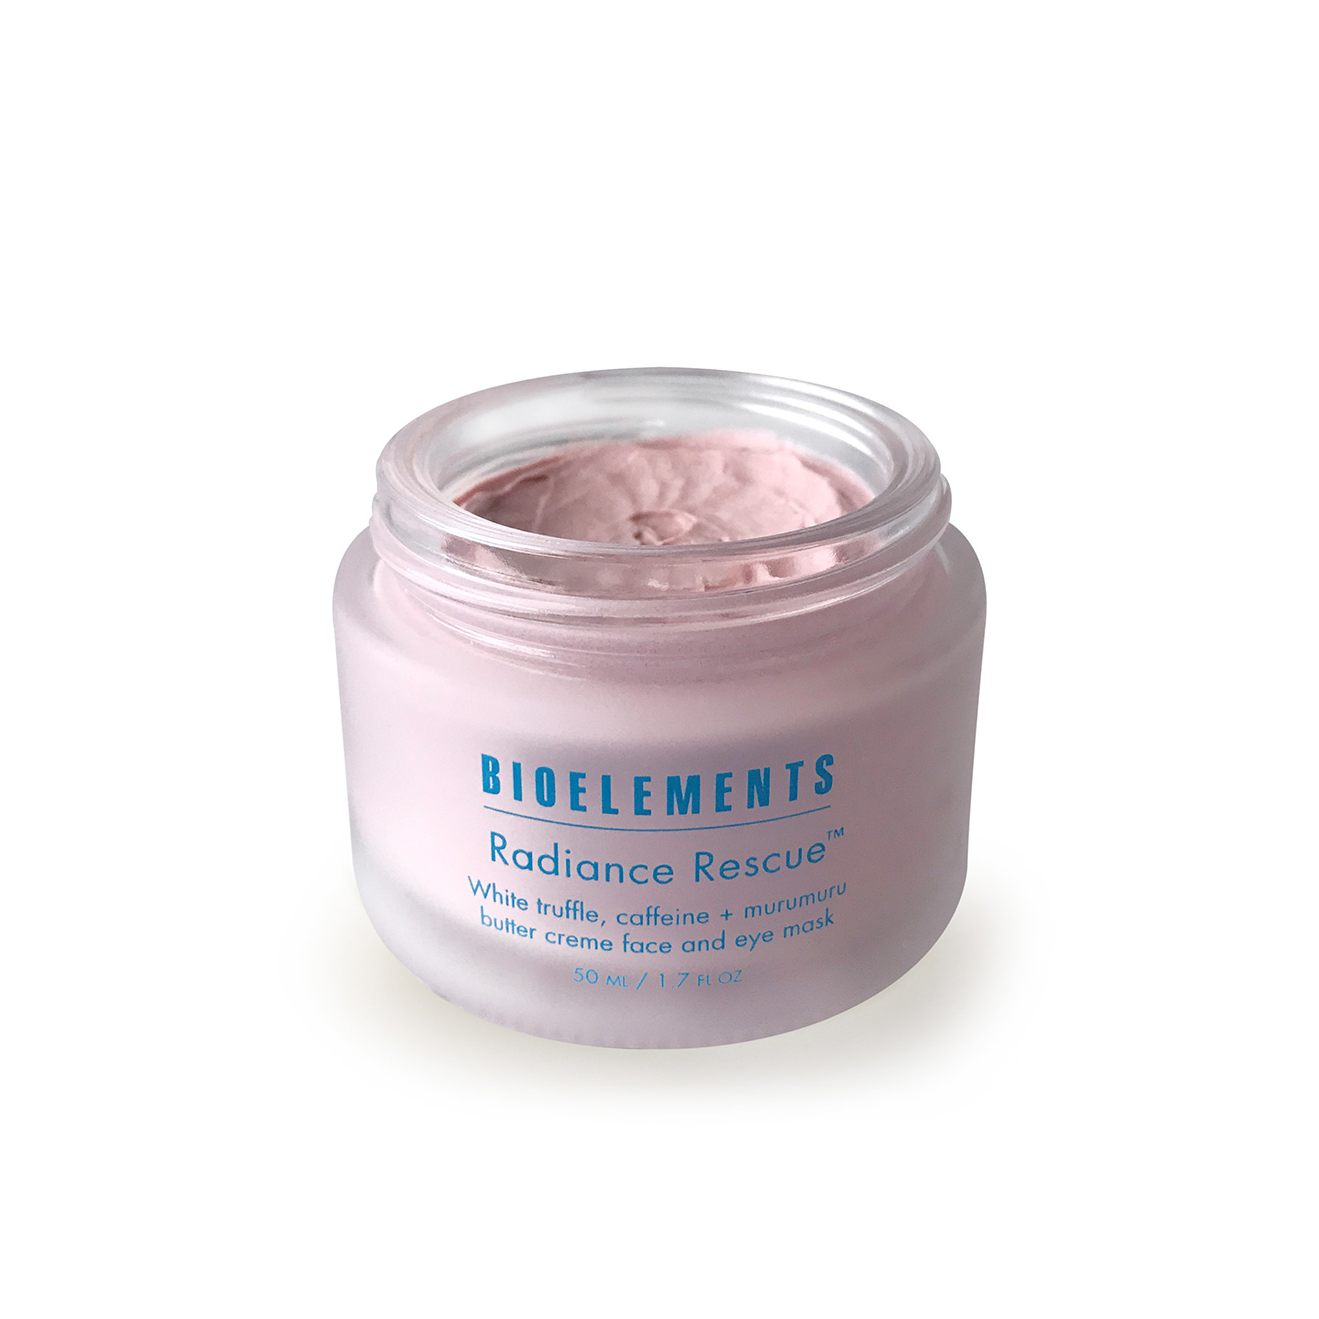 Bioelements Radiance Rescue Face and Eye Mask